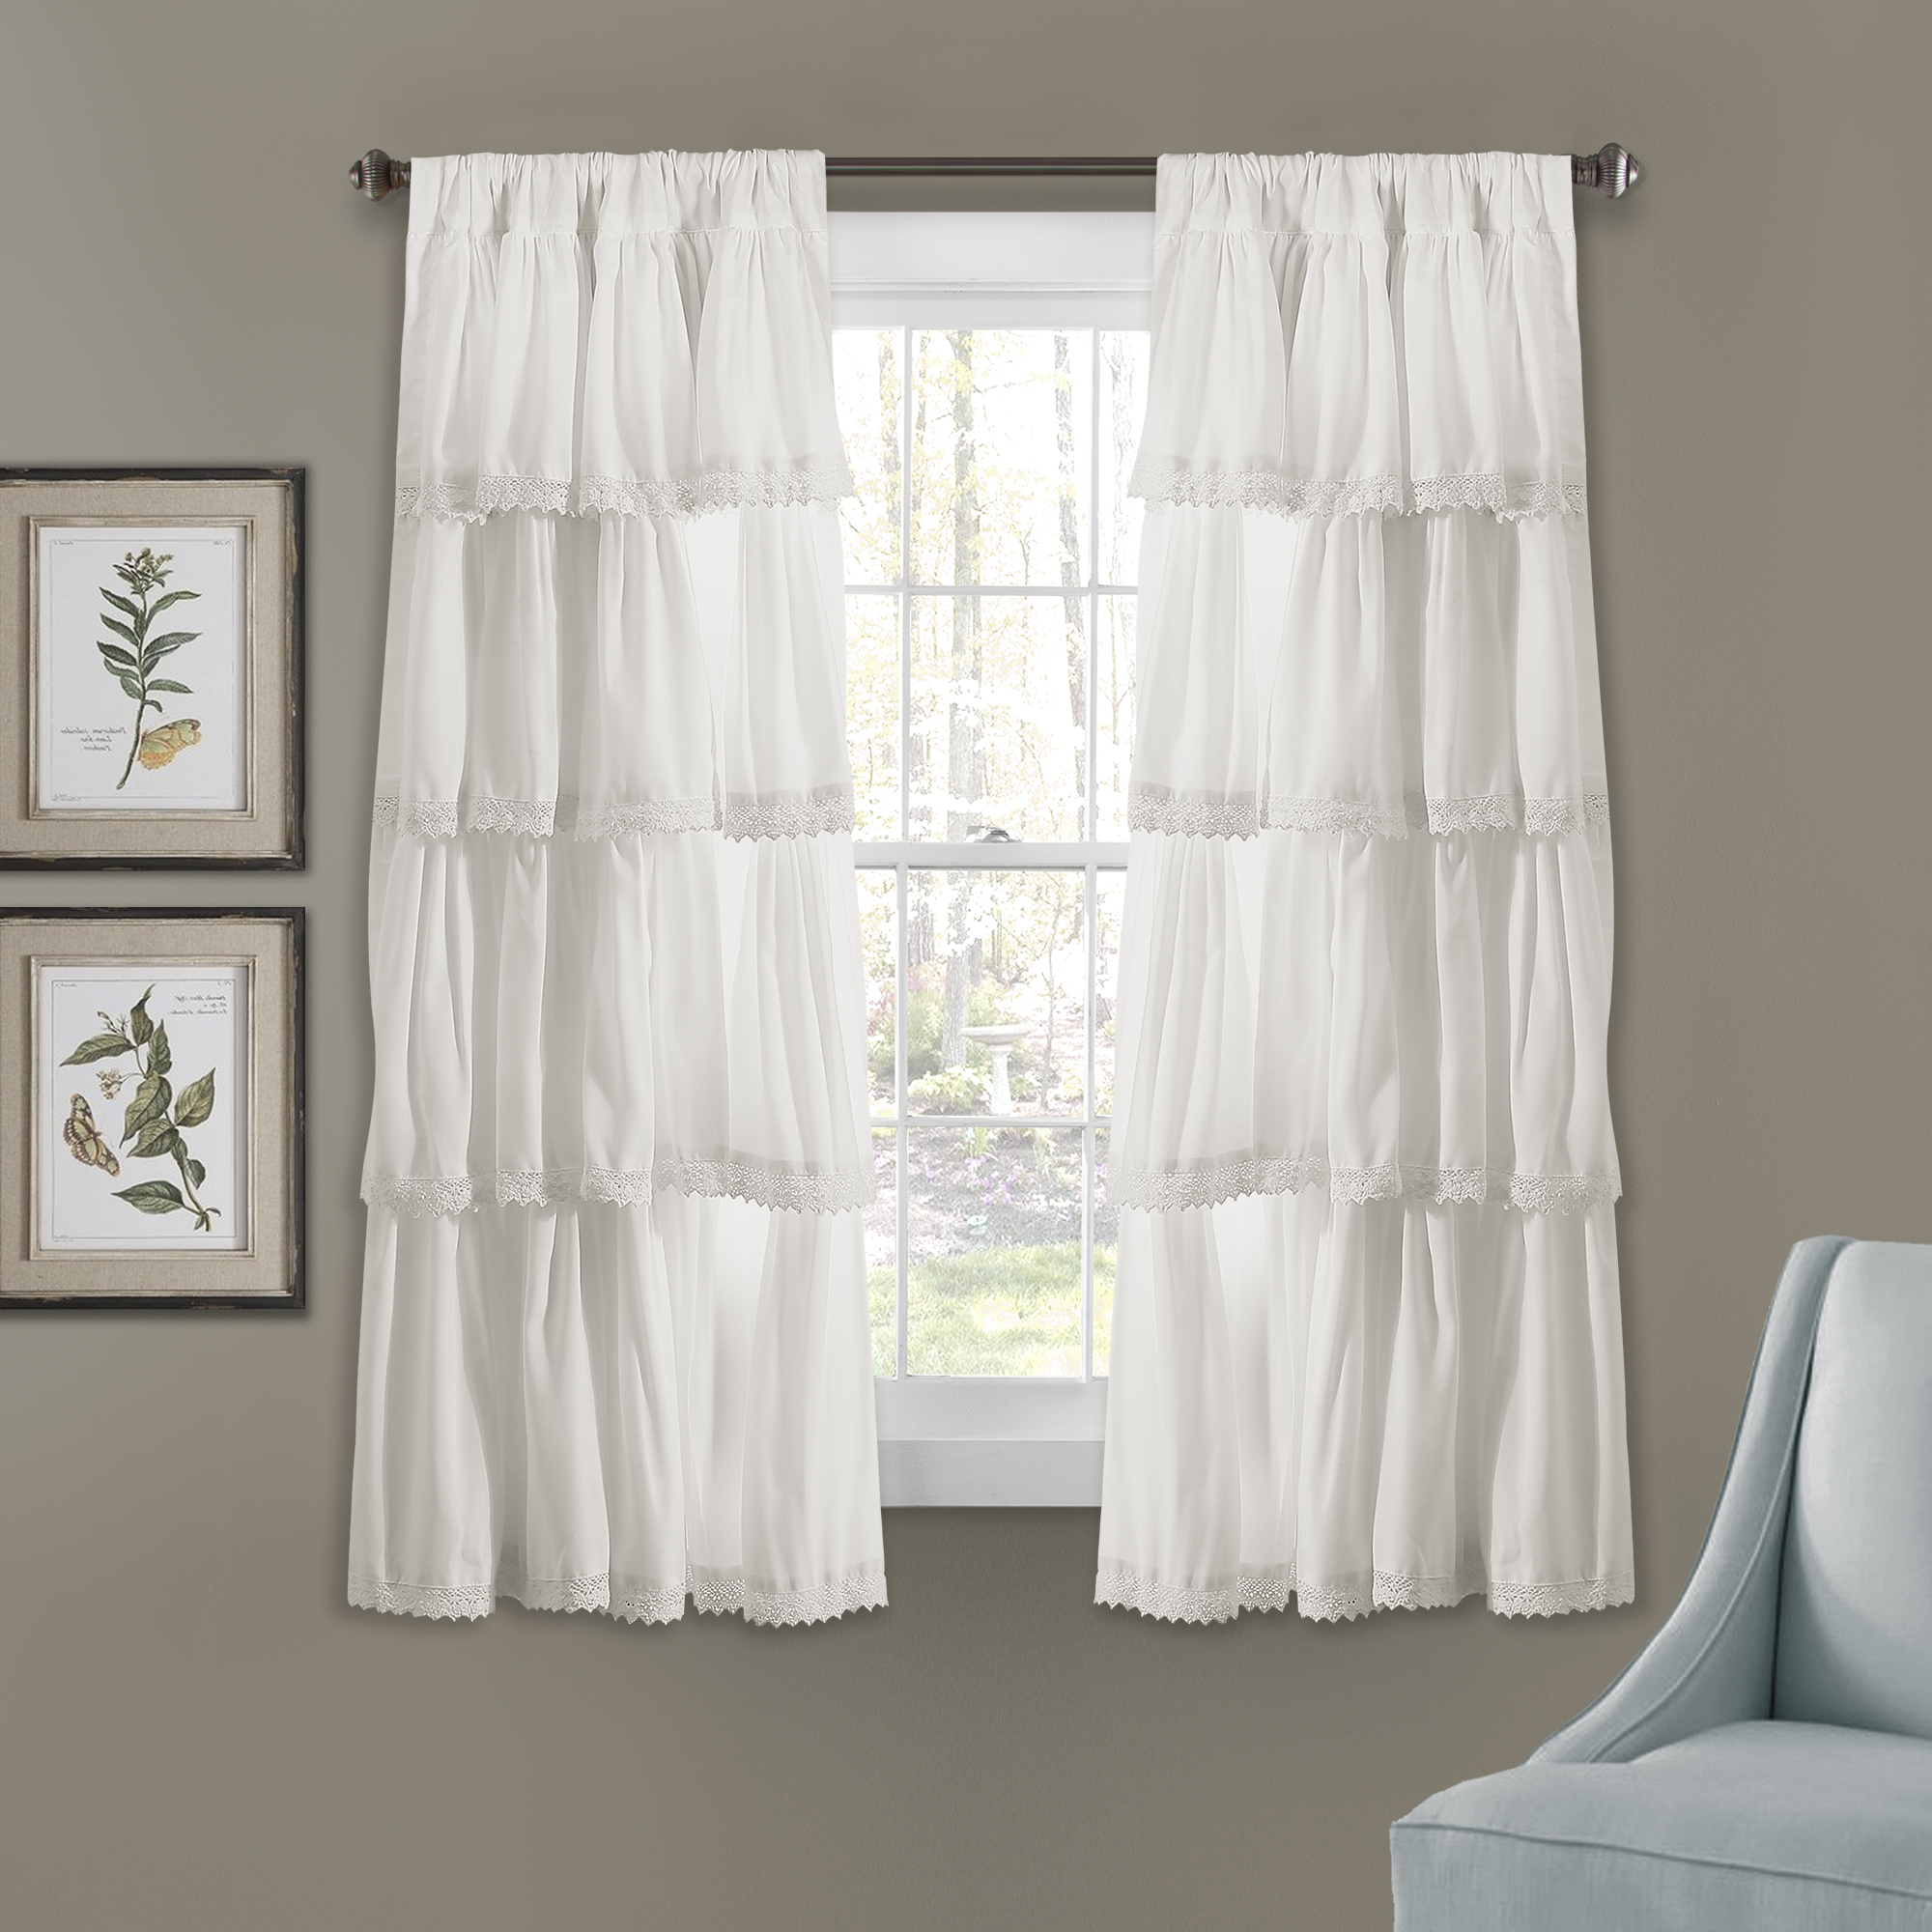 Best And Newest Ella Window Curtain Panels Intended For Ella Lace Ruffle Window Curtain Panels White Set 32x (View 4 of 20)